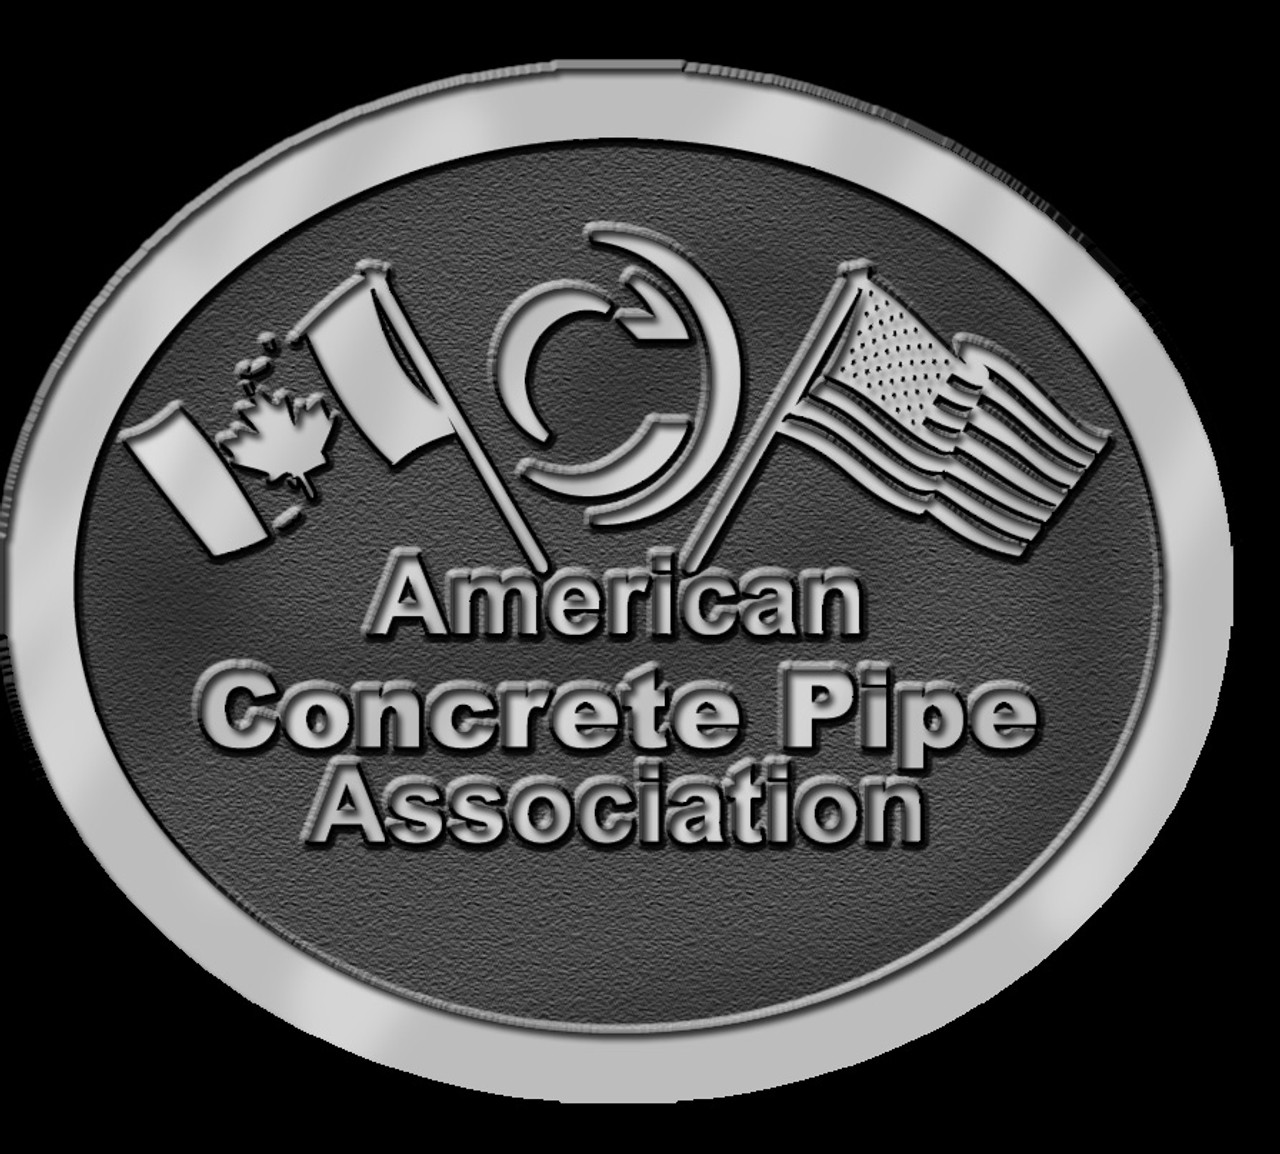 American Concrete Pipe Association Belt Buckle